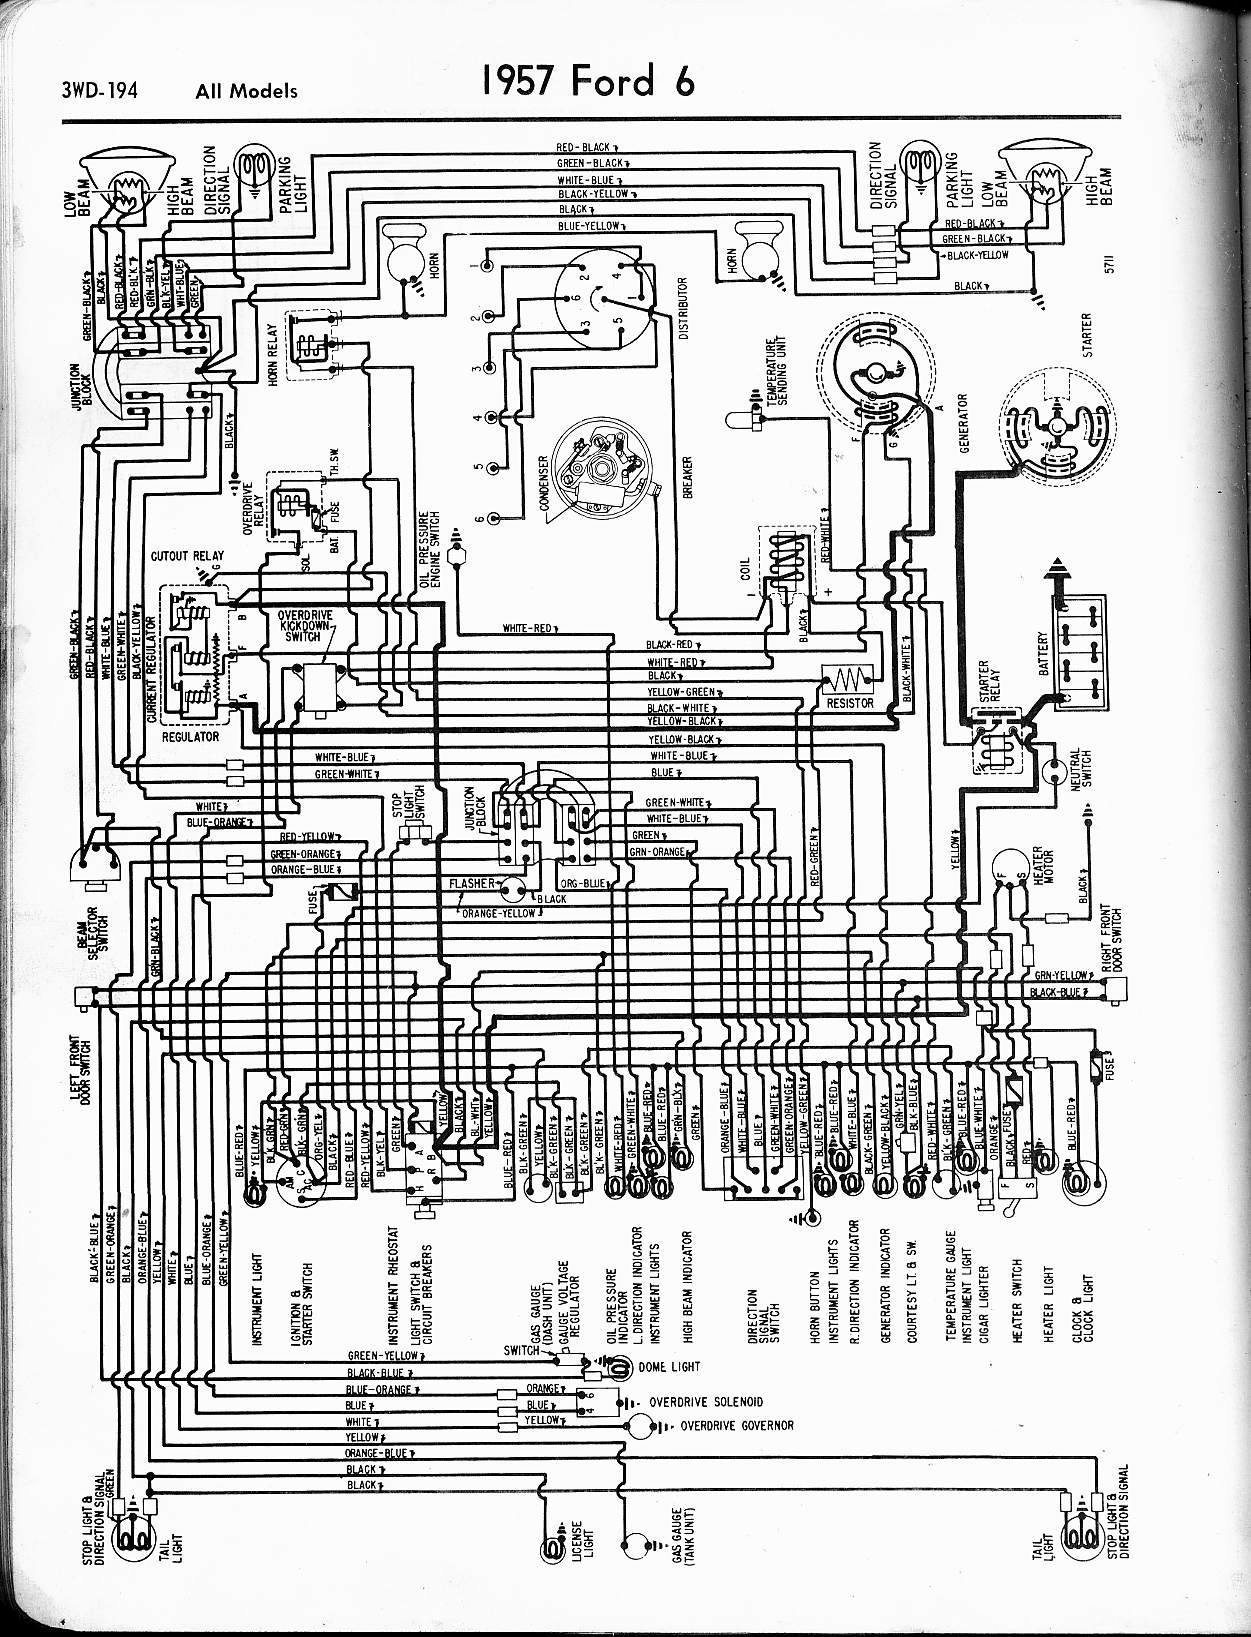 51 ford f1 wiring diagram wiring diagram Ford Generator Wiring Diagram 53 ford f100 wiring 7 16 asyaunited de \\u20221953 ford f100 engine wiring diagram circuit